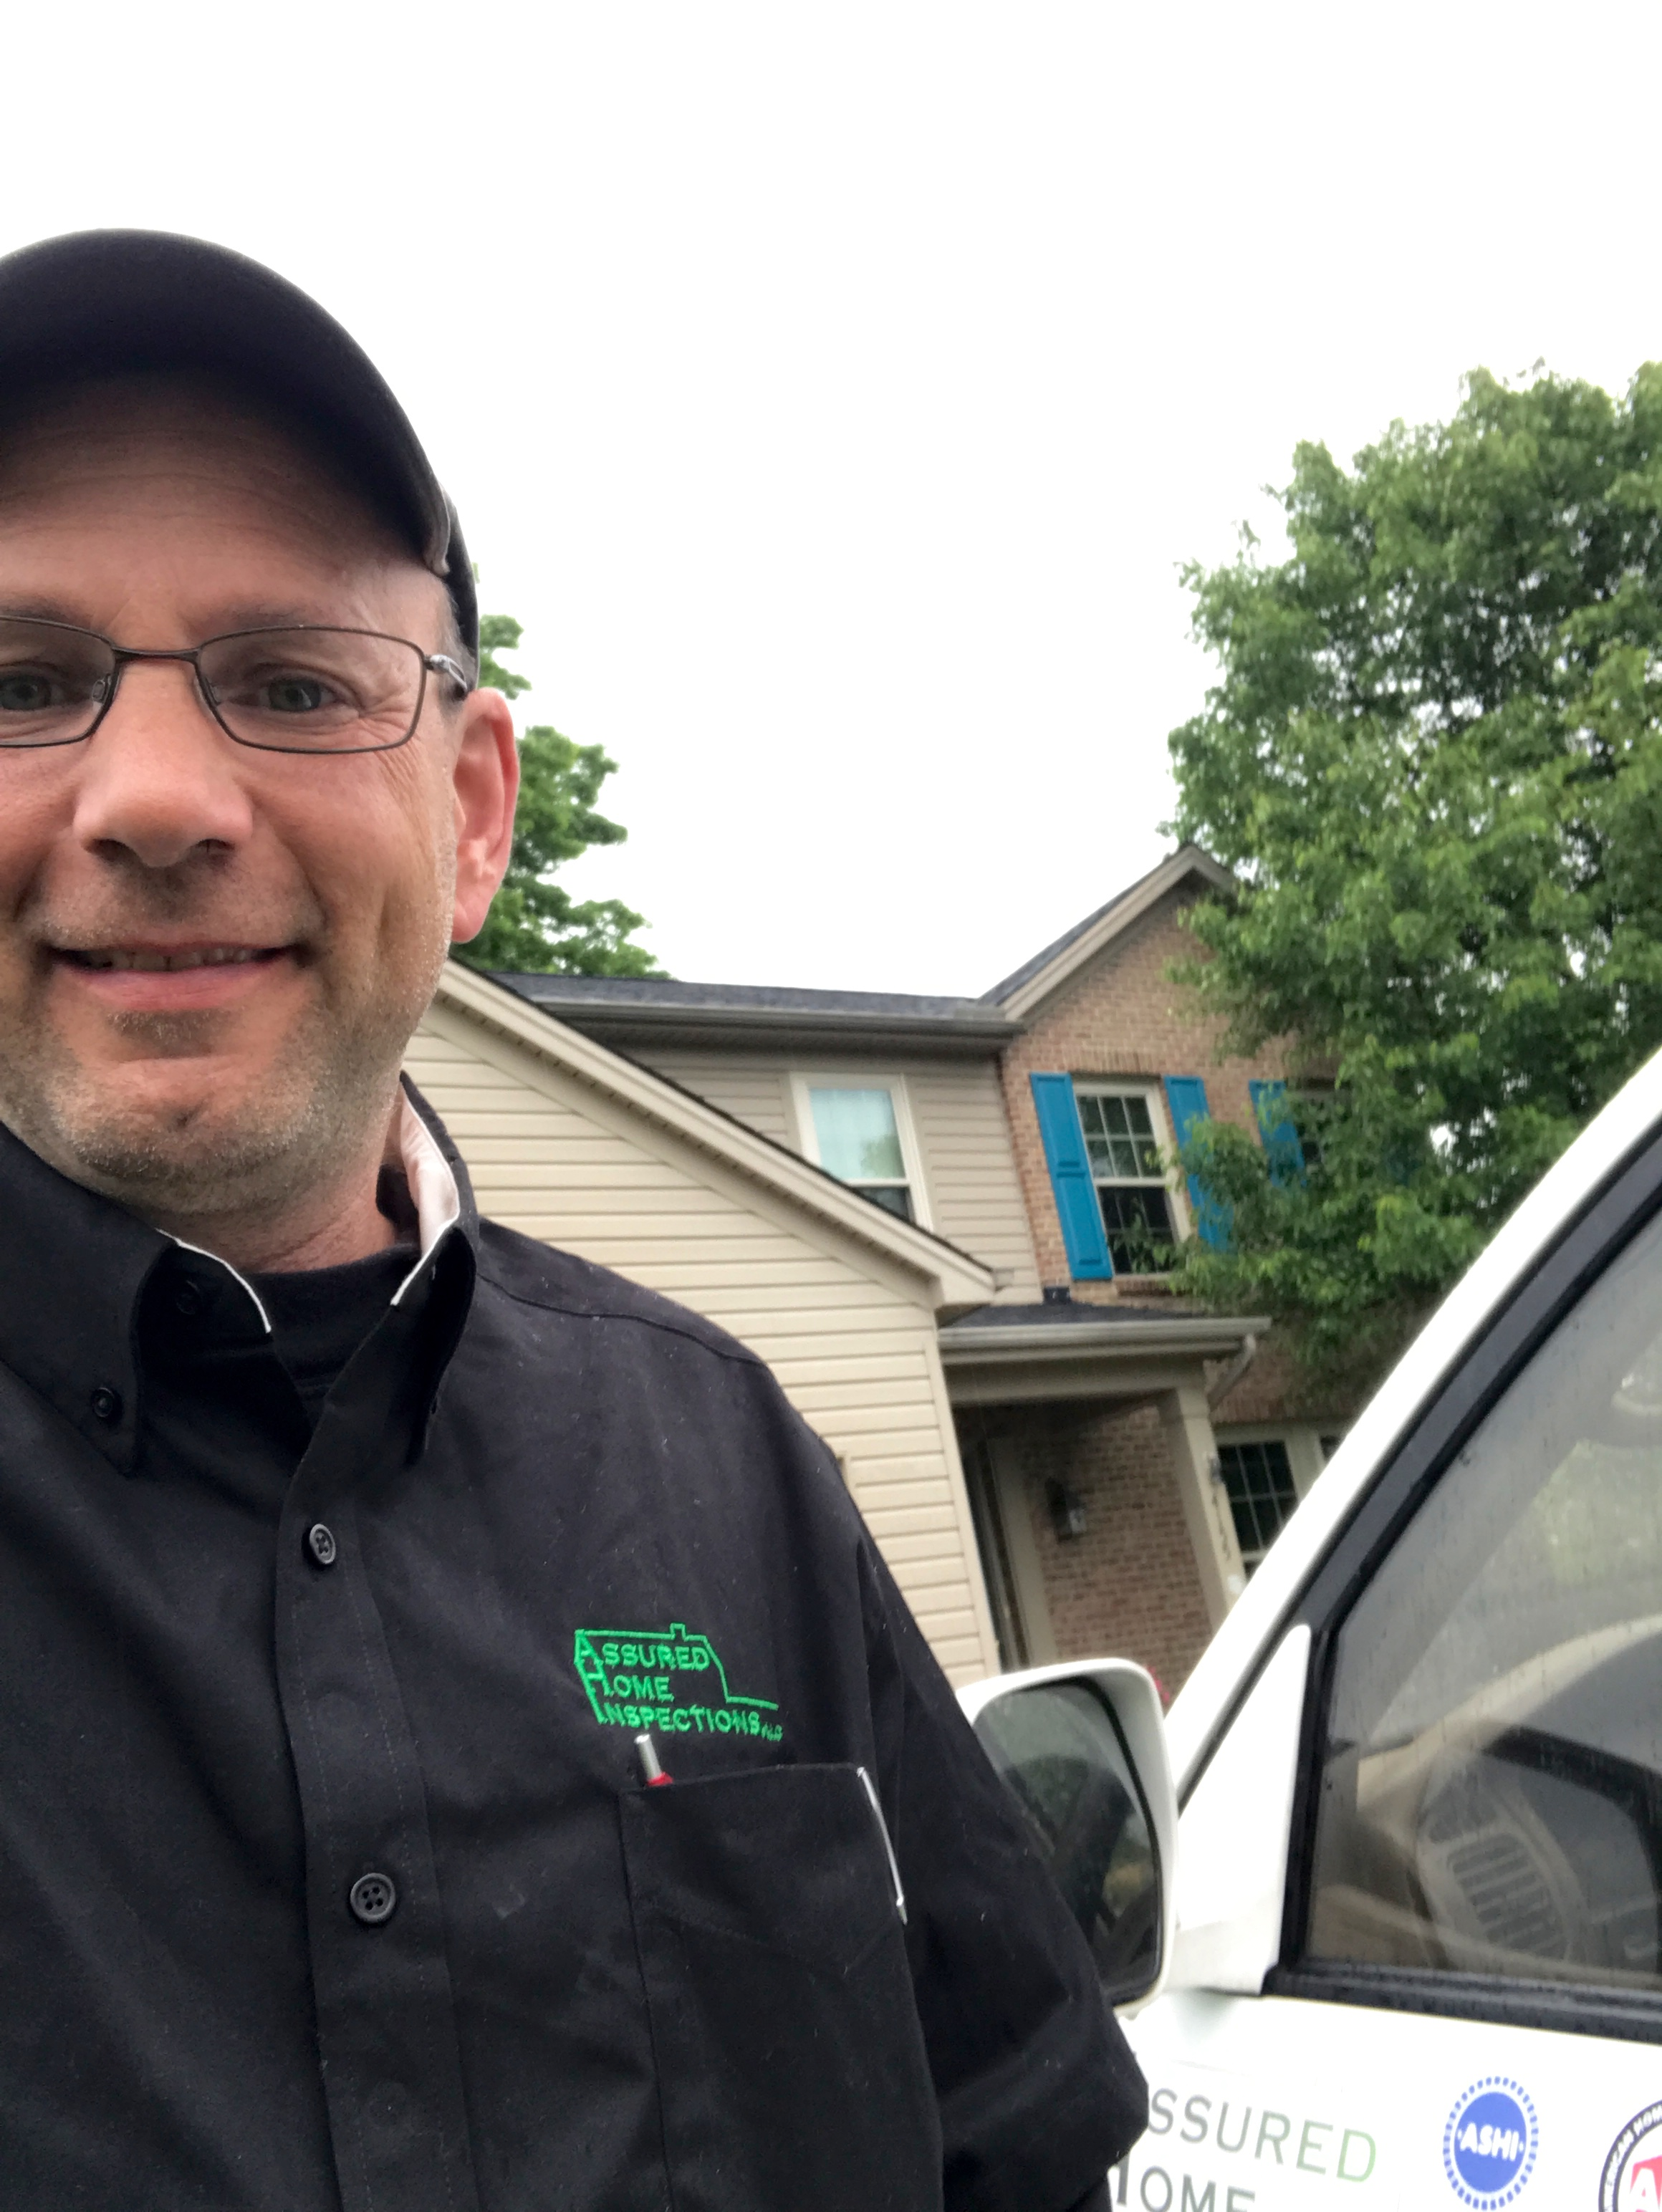 John Lawson of Assured Home Inspections out inspecting homes in Northern Kentucky